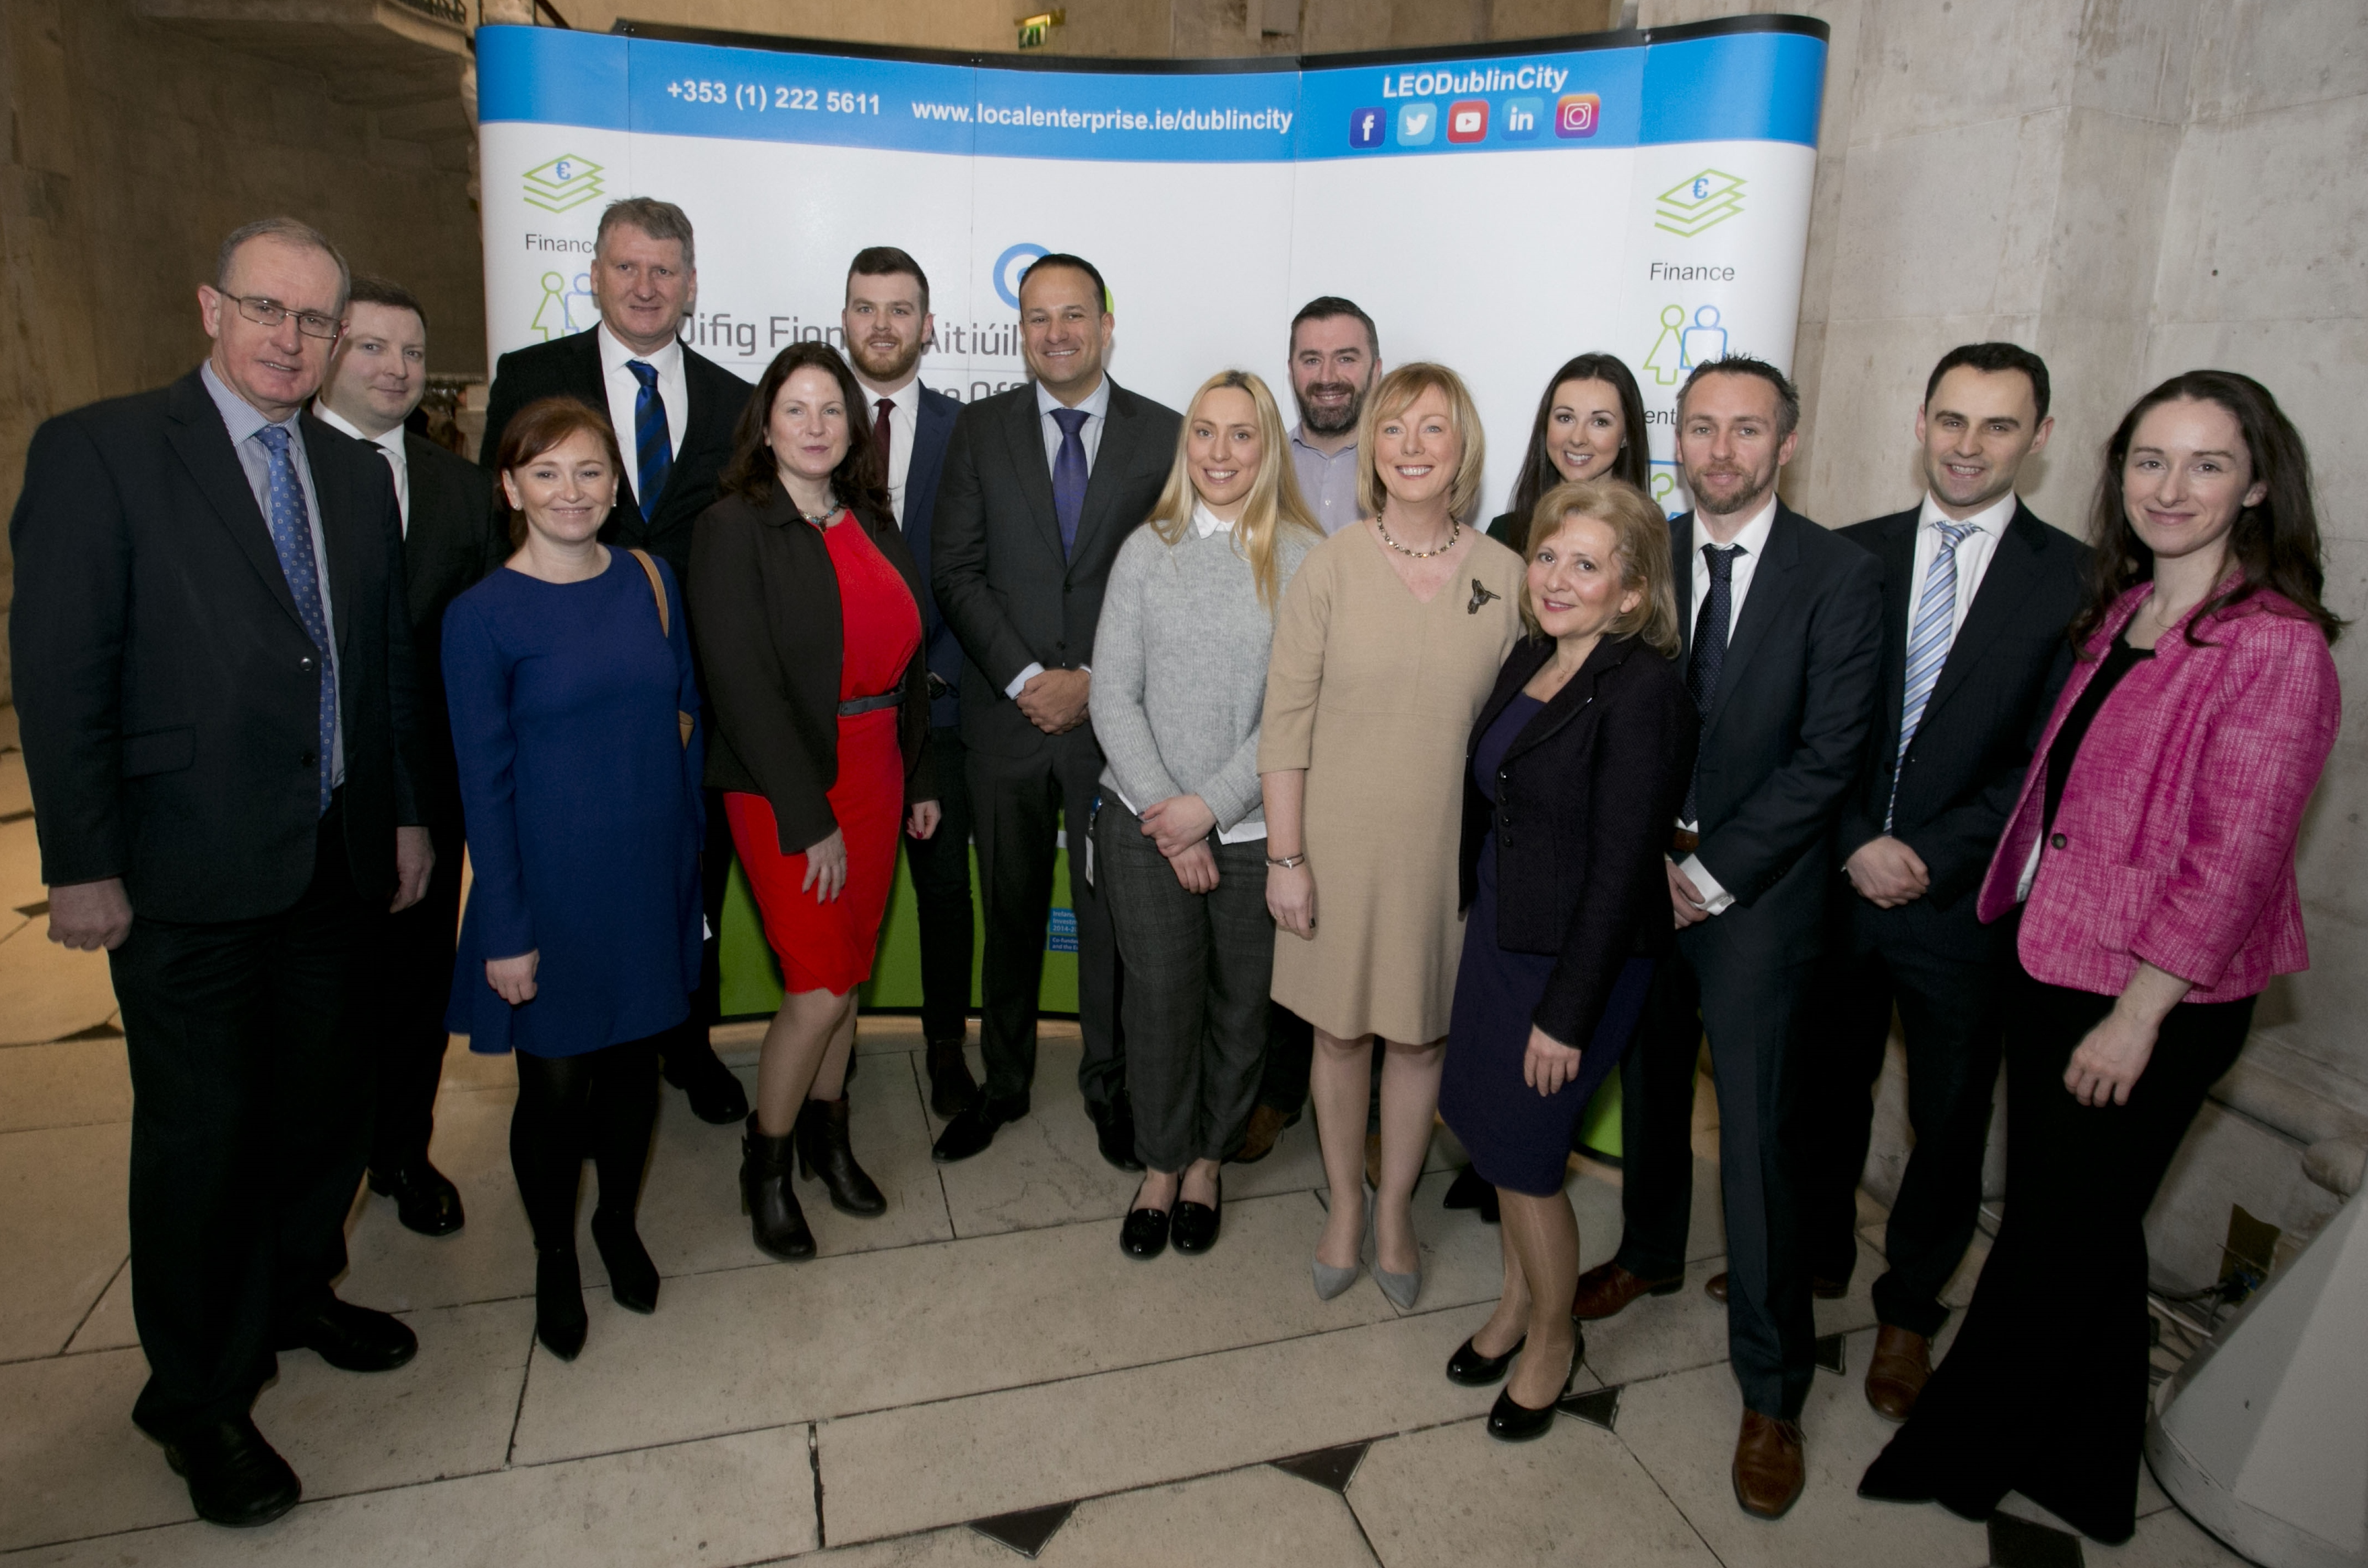 LEO Staff with Taoiseach